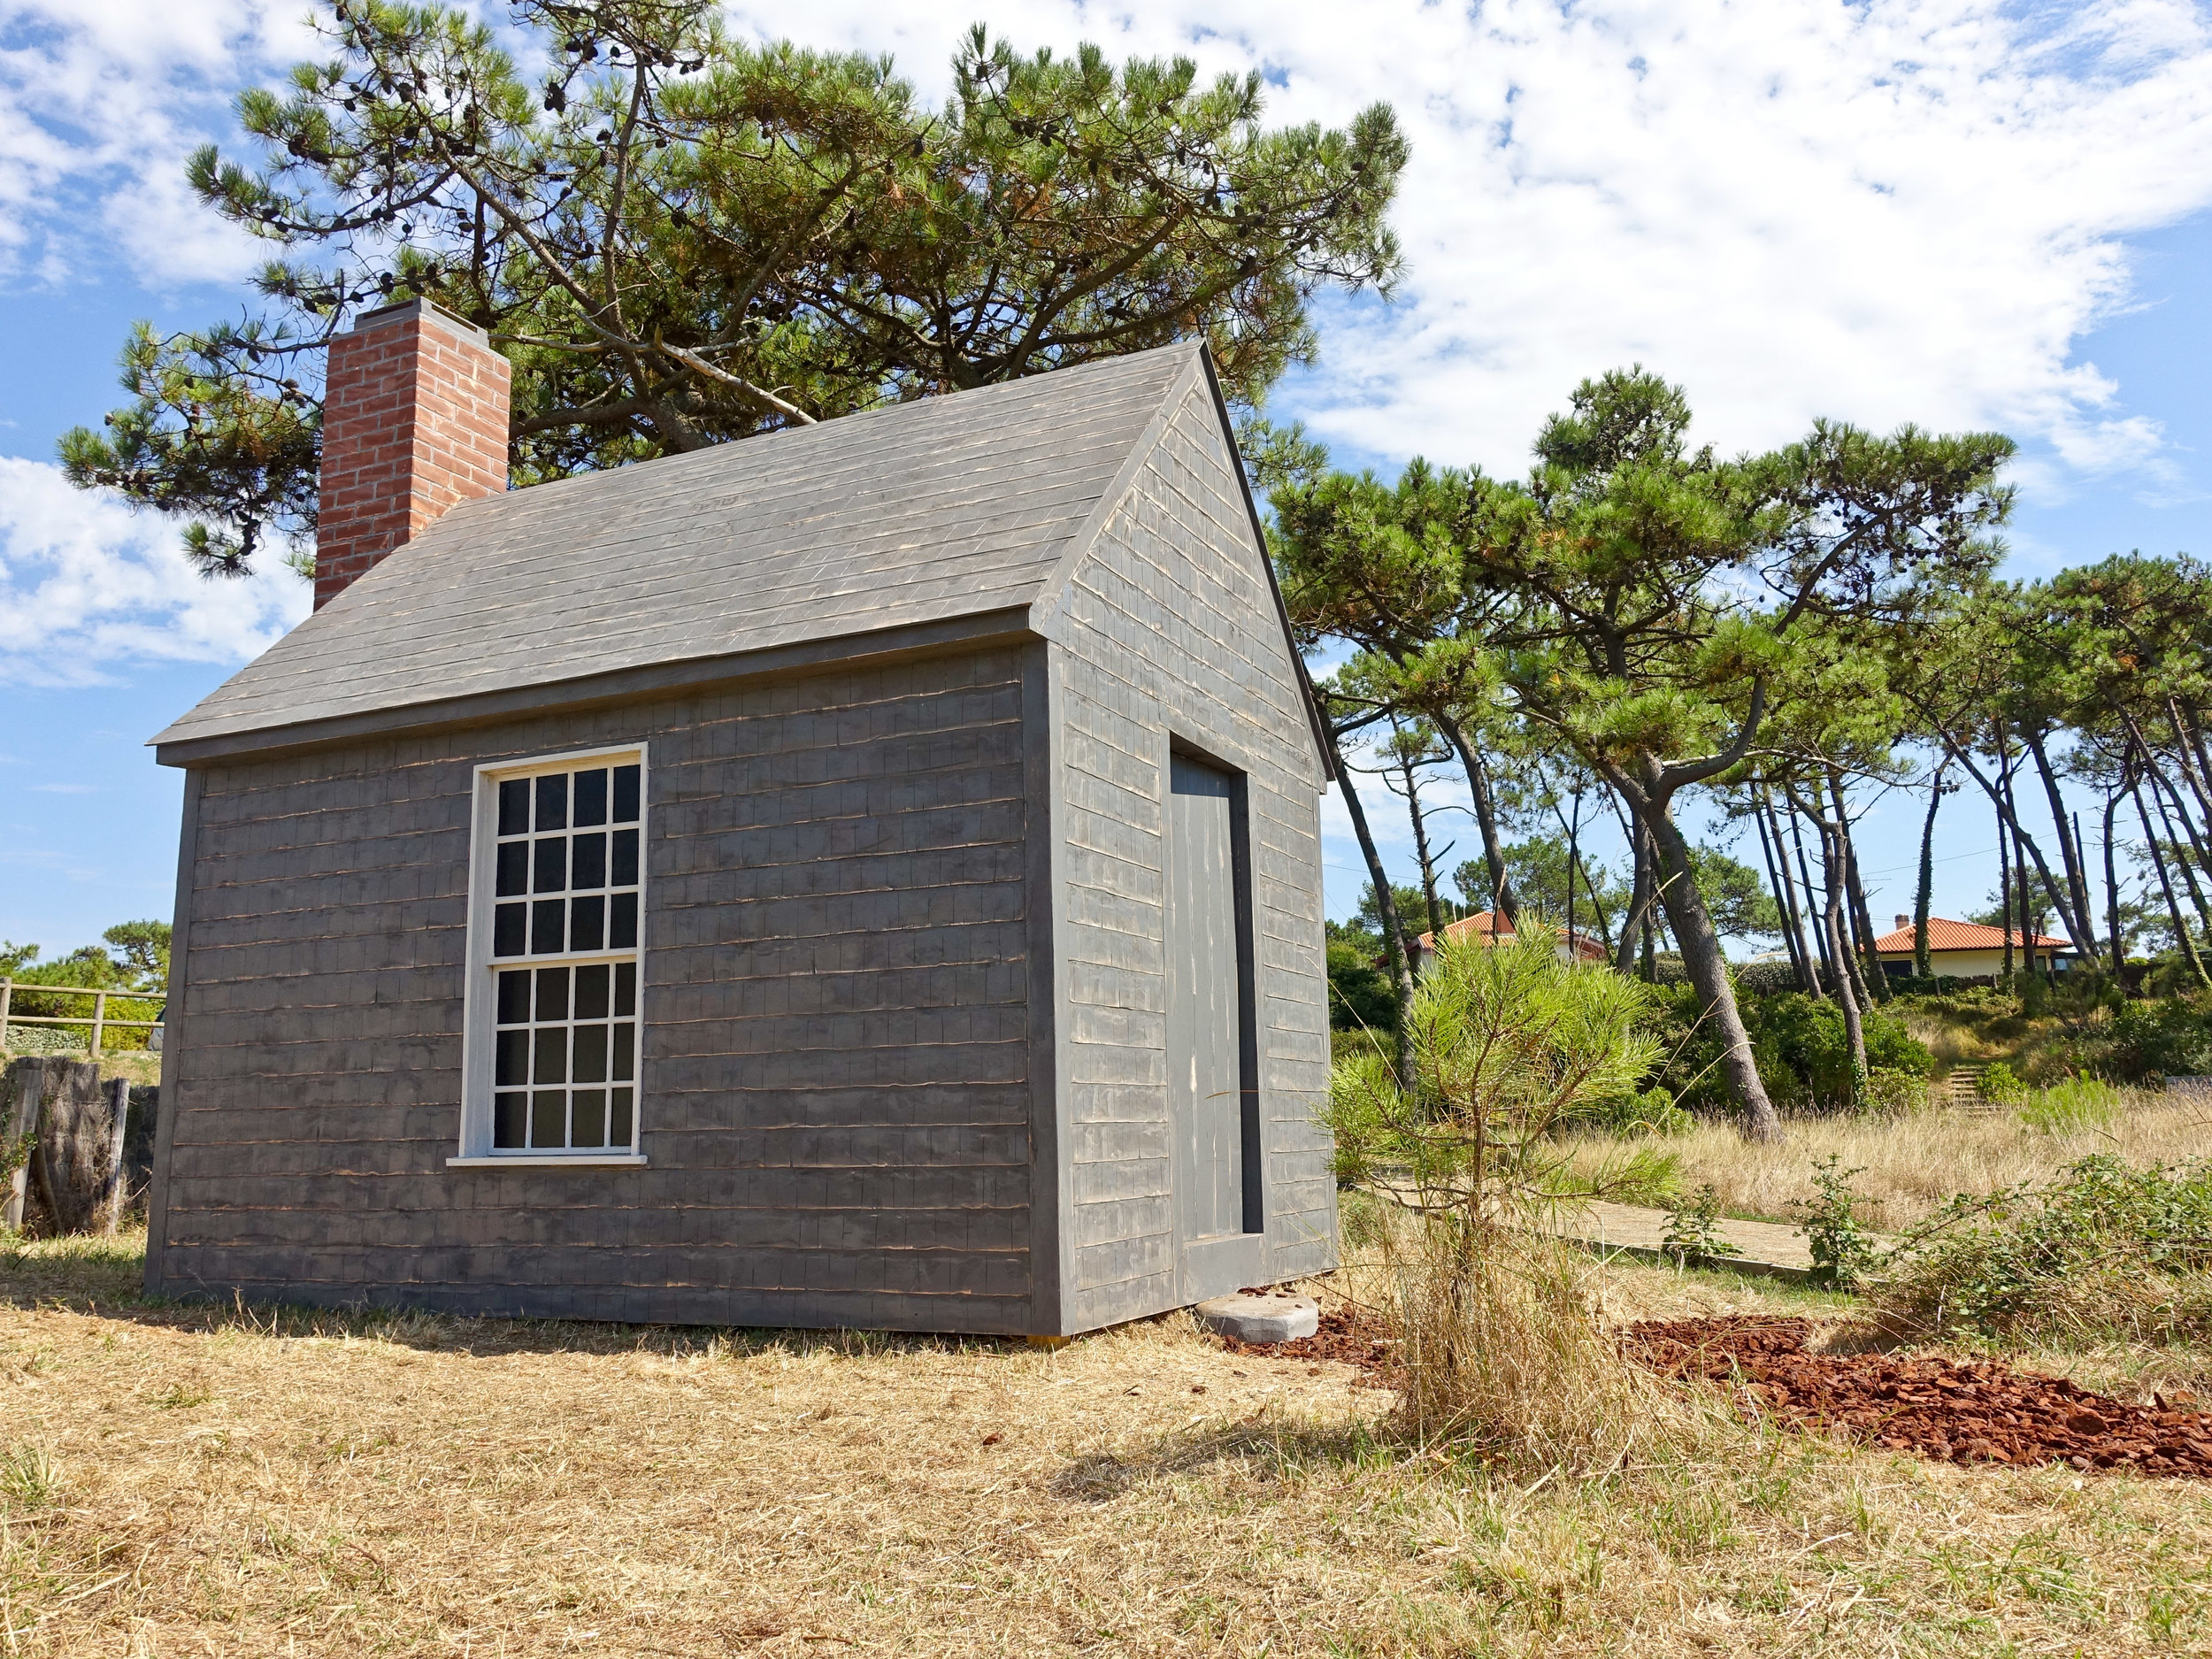 Untitled Project: Cabin [Thoreau]   La Littorale 6 Biennale Internationale D'Art Contemporain Anglet-Côte Basque Enamel paint, oil paint on carved wood, 1:1 scale 2016   A carved and painted replica of Henry David Thoreau's cabin at Walden Pond near Concord, Massachusetts. This cabin-as-object is intended to function as a sincere/unsatisfactory object providing a critical commentary on the theatre of nature and the commodification of self-reliance––all of which is useful for considering one's place in the natural world. This project was sited specifically on the shore of Lac Nord of Izadia Ecological Park in Anglet, France for La Littorale #6, Biennale Internationale D'Art Contemporain Anglet-Côte Basque curated by Paul Ardenne.